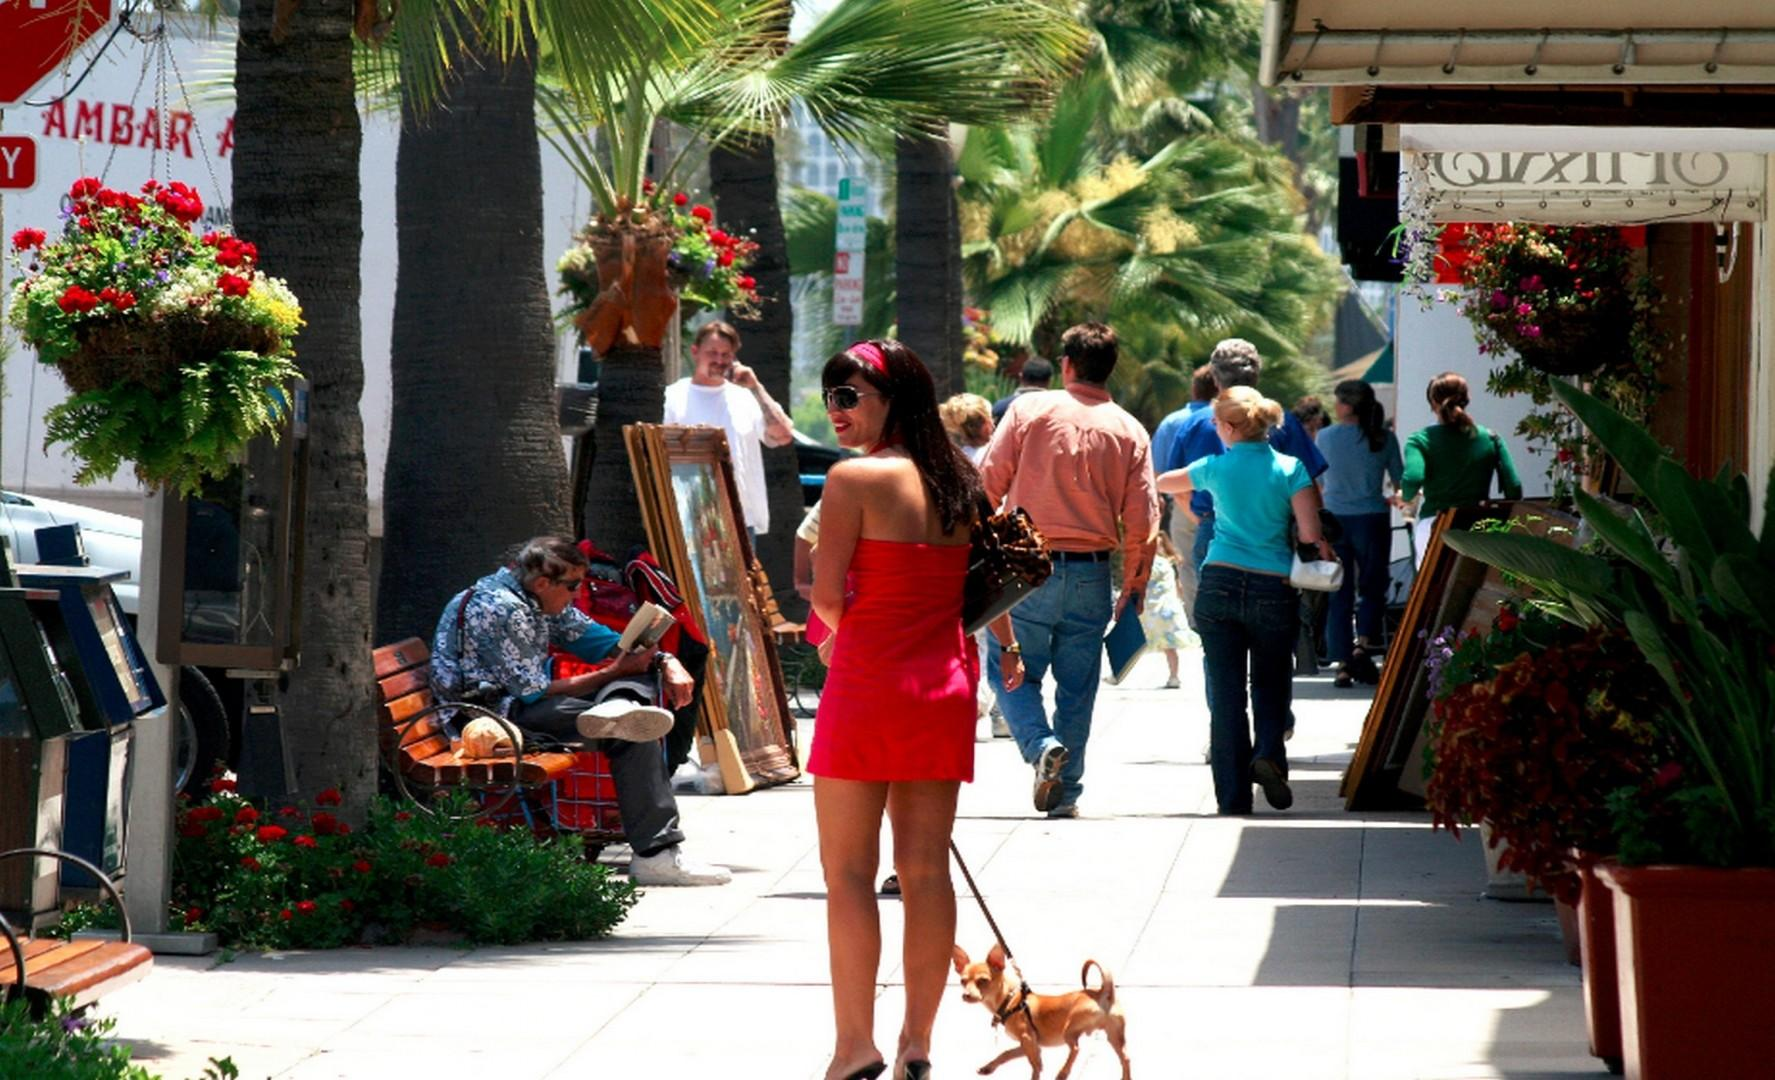 Boutique Shopping in the Village